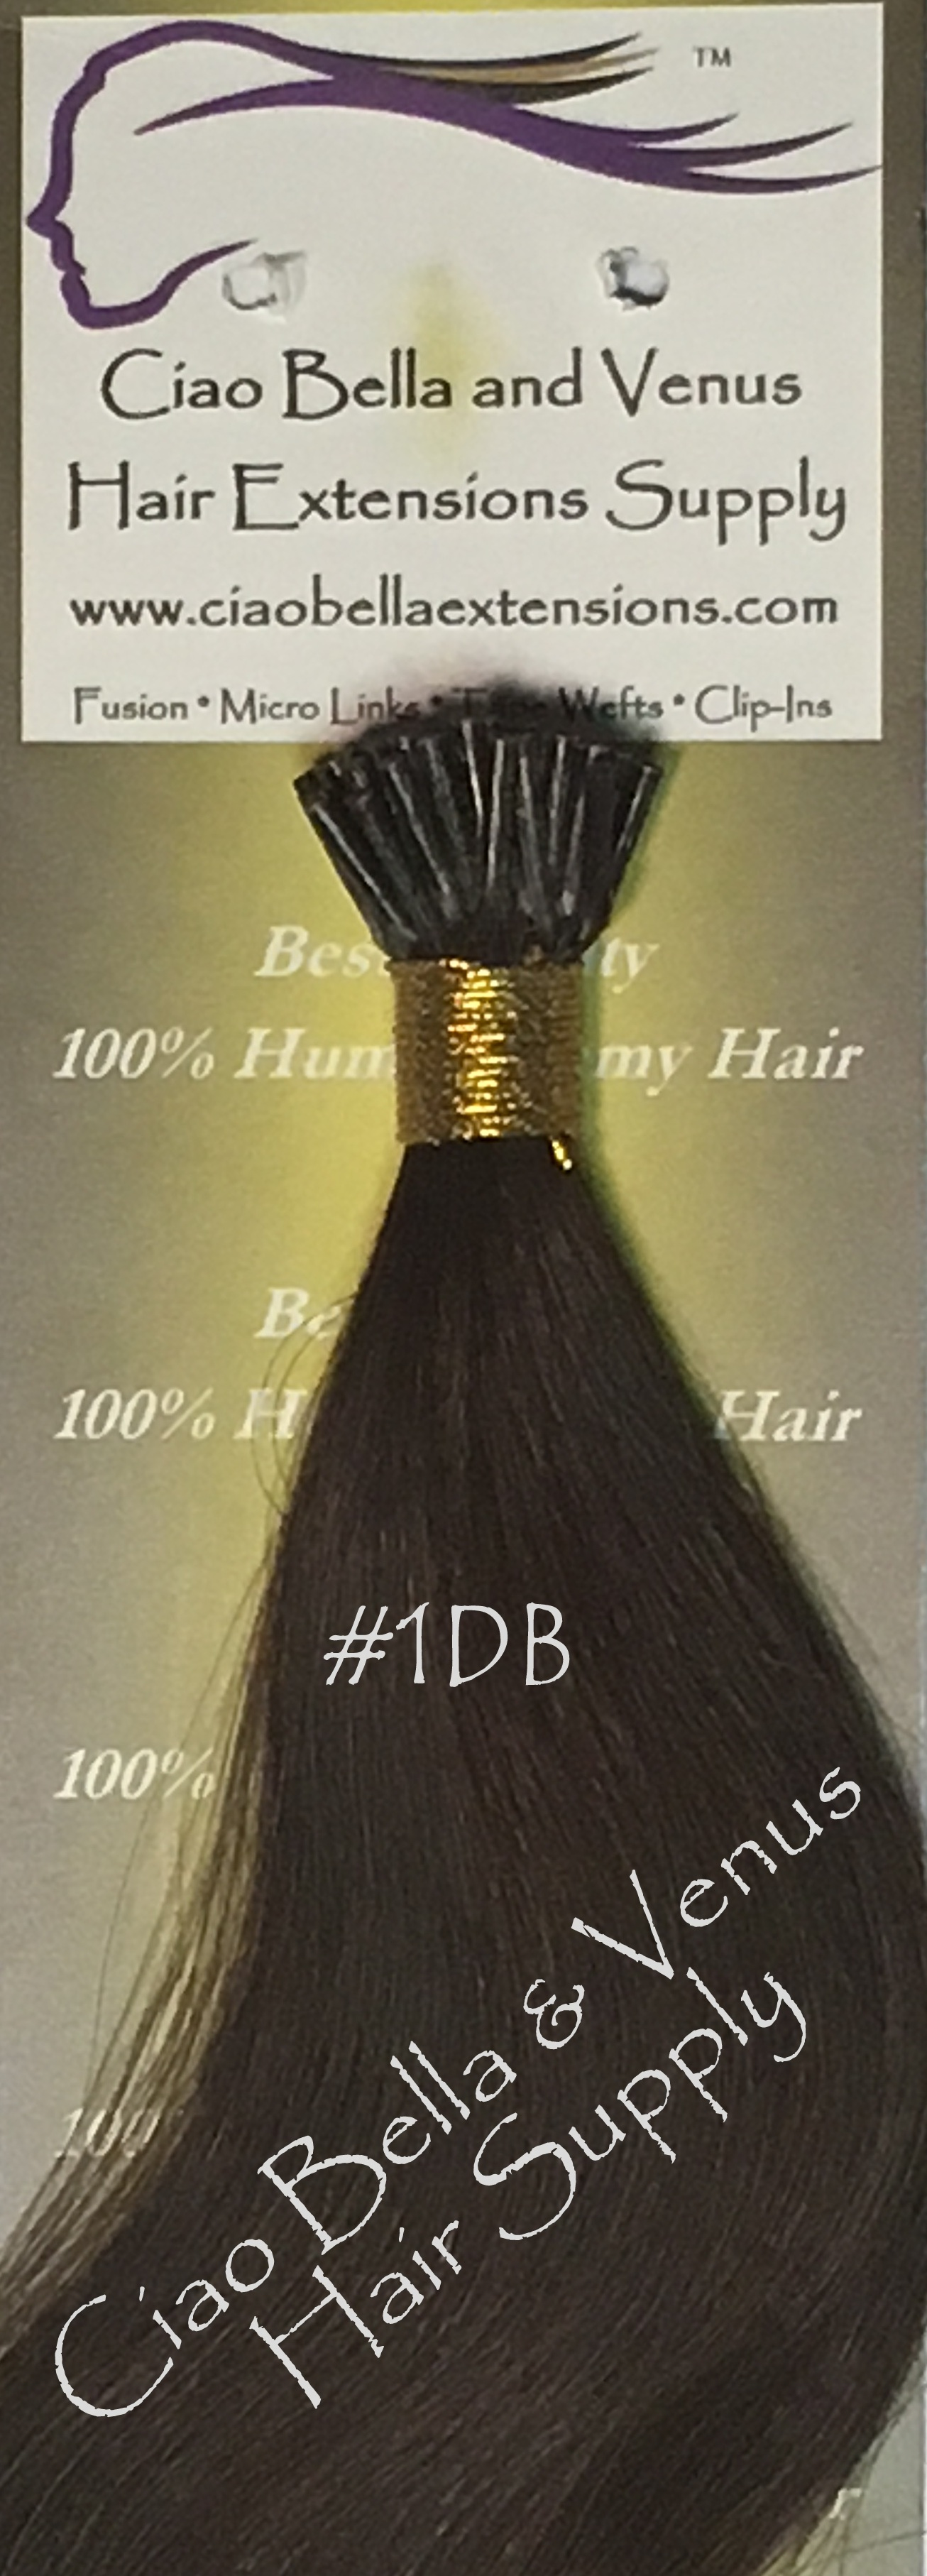 Hair Extensions Brands Images Hair Extensions For Short Hair